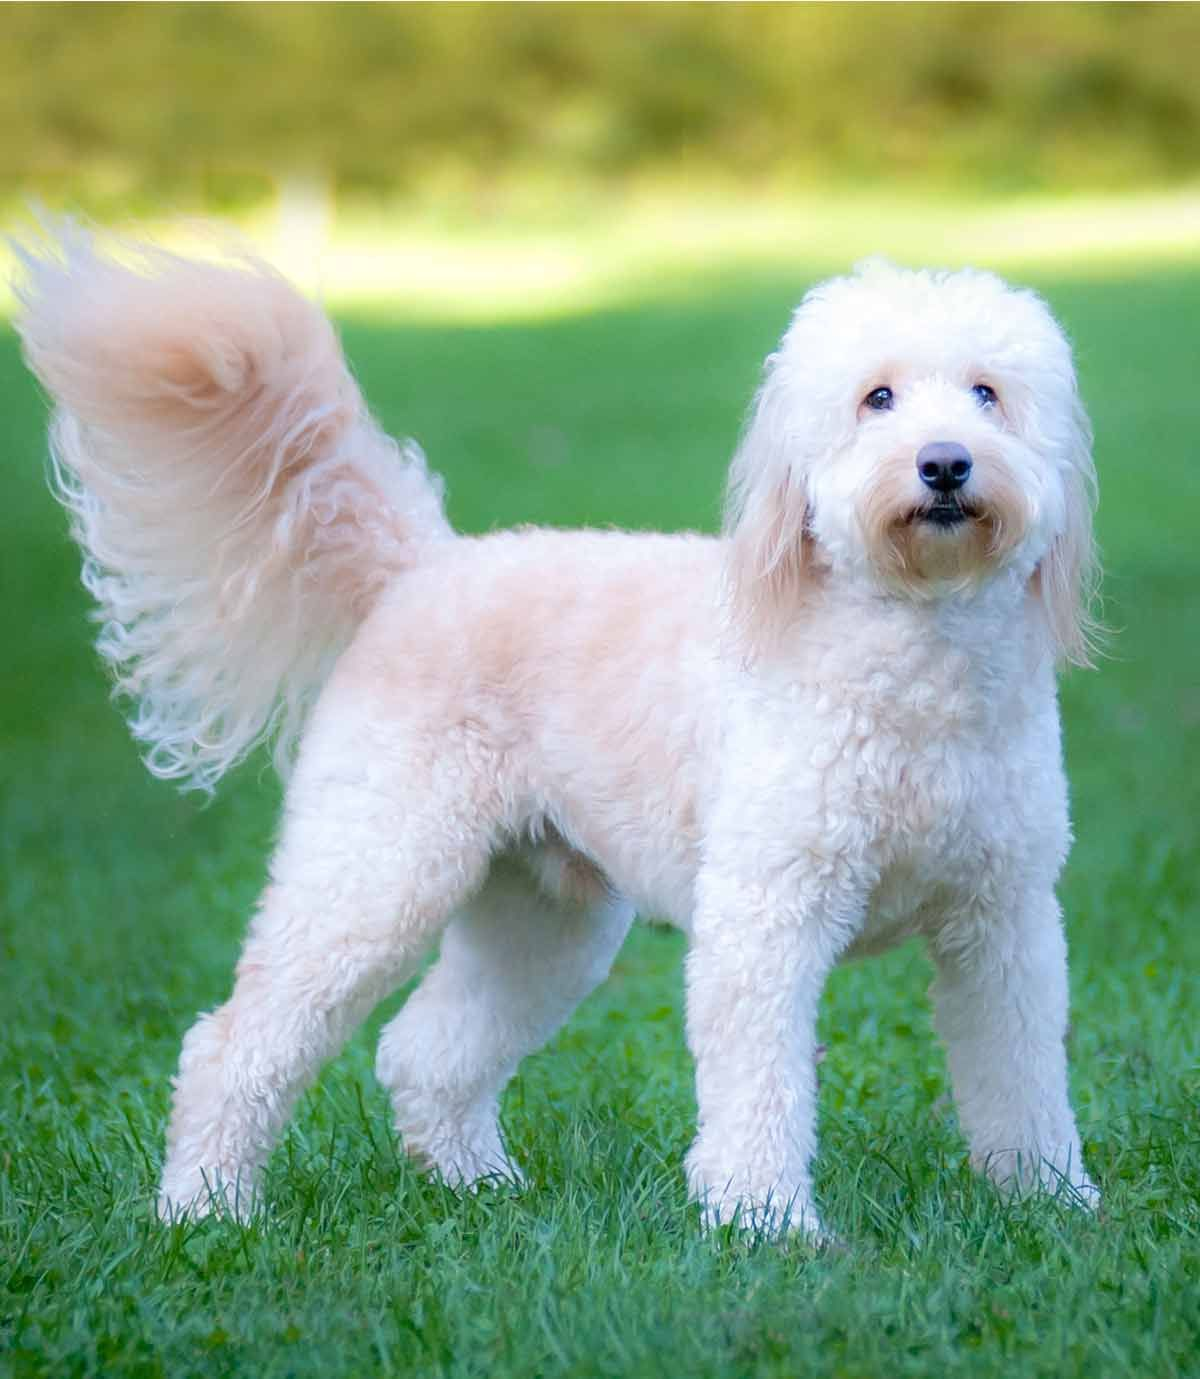 Labradoodle Vs Goldendoodle What Is The Difference Between Them